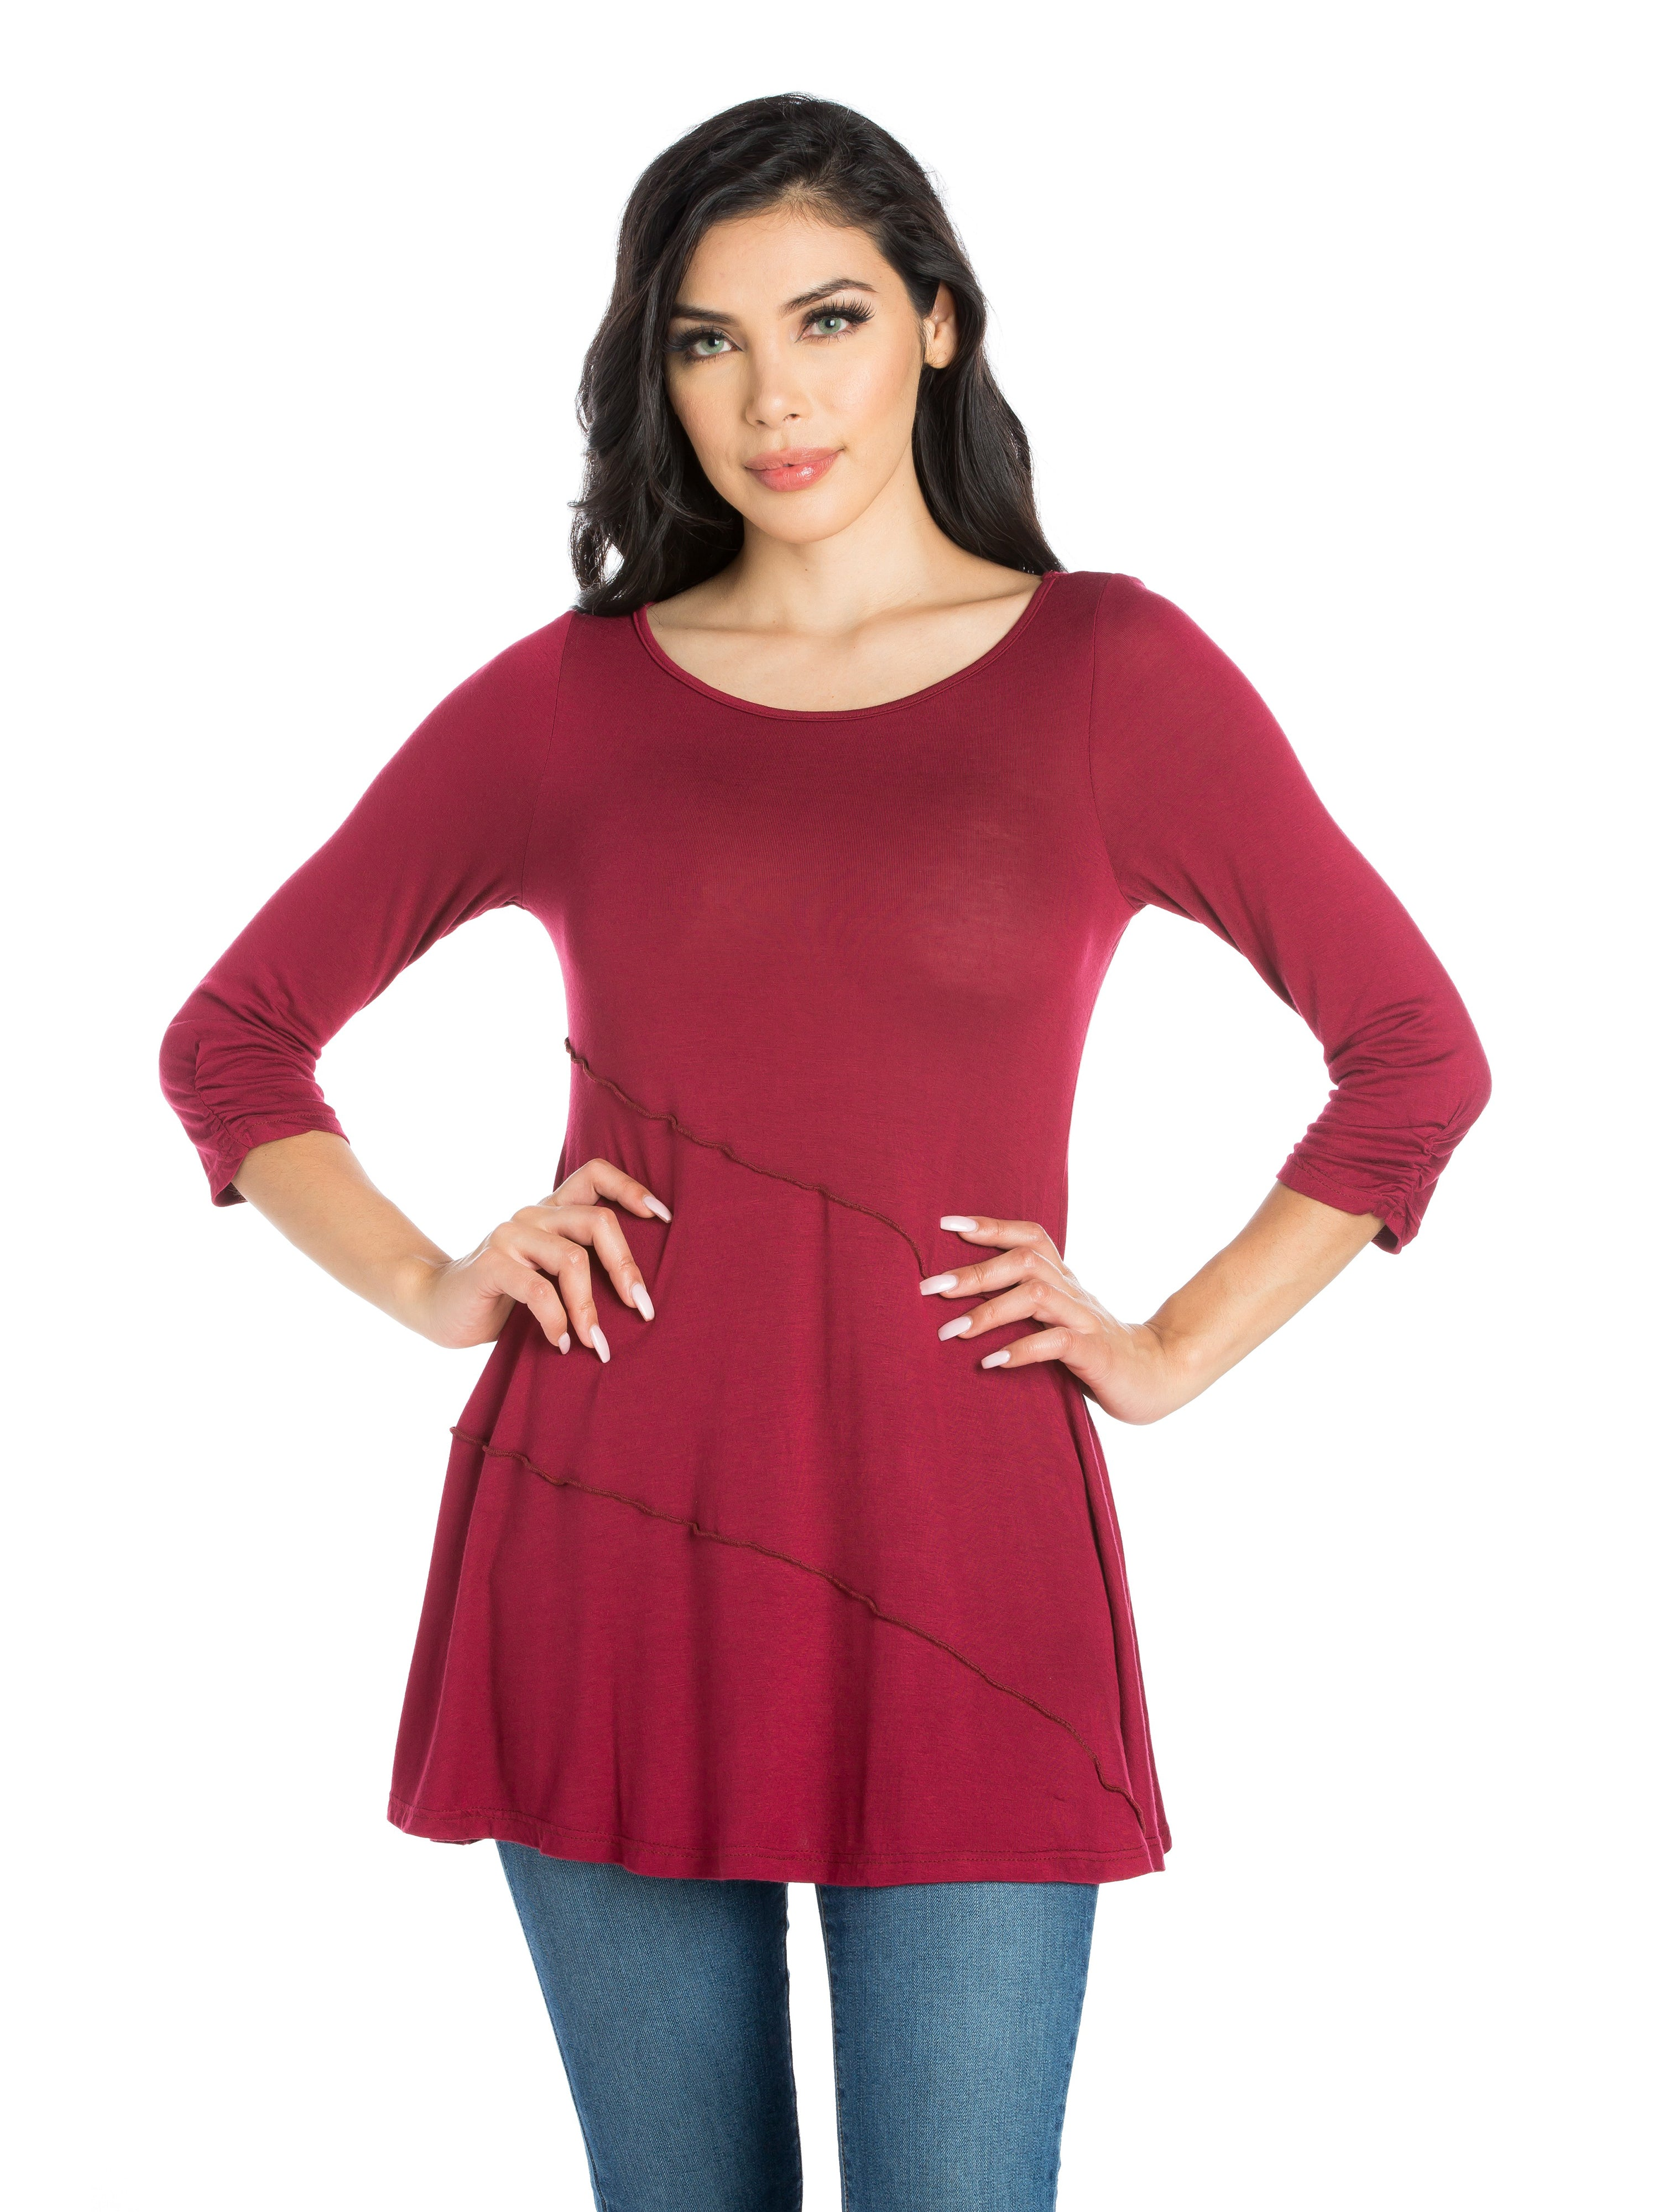 24seven Comfort Apparel Ruched Sleeve Swing Tunic Top-TOPS-24Seven Comfort Apparel-WINE-S-24/7 Comfort Apparel